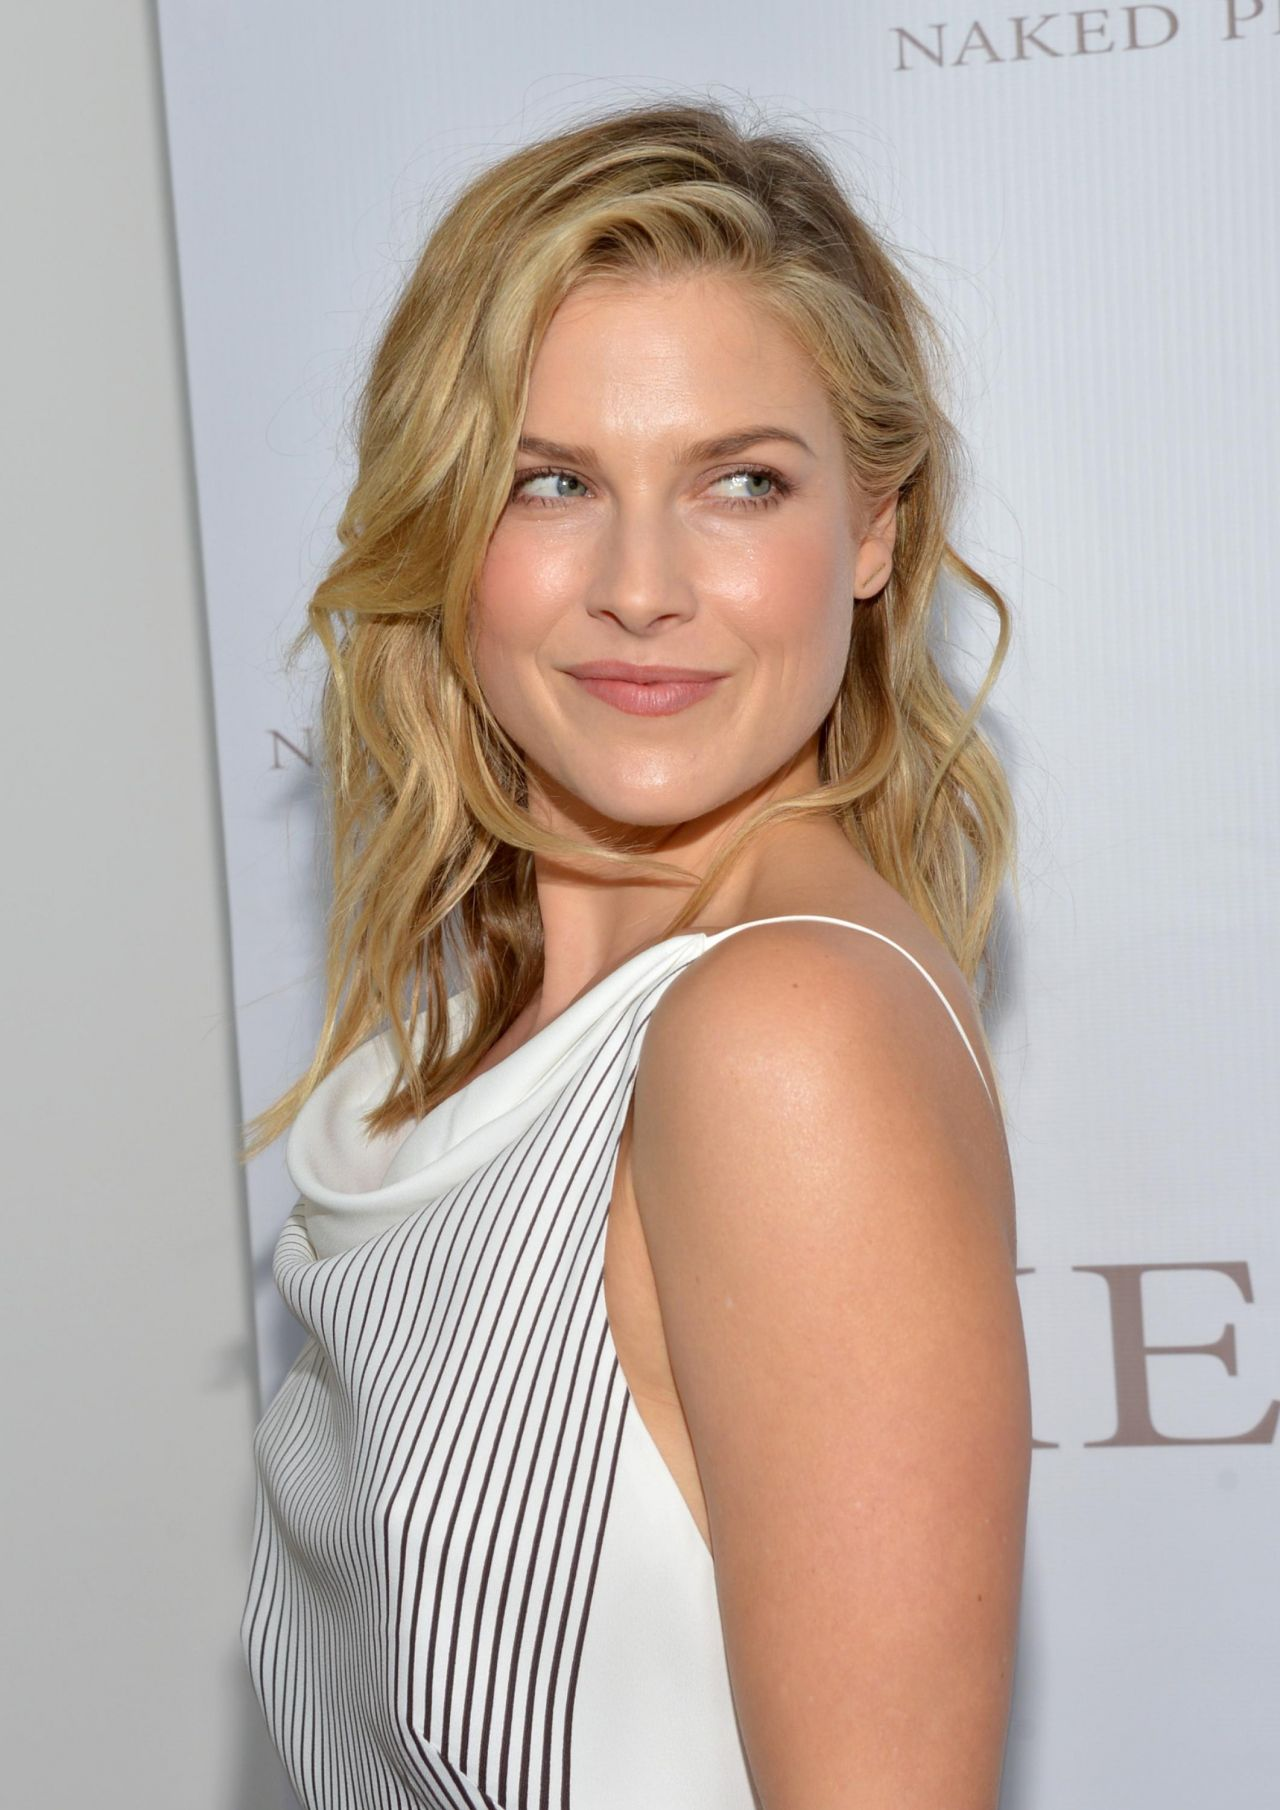 Ali Larter At Naked Princess Flagship Boutique Opening In -2558